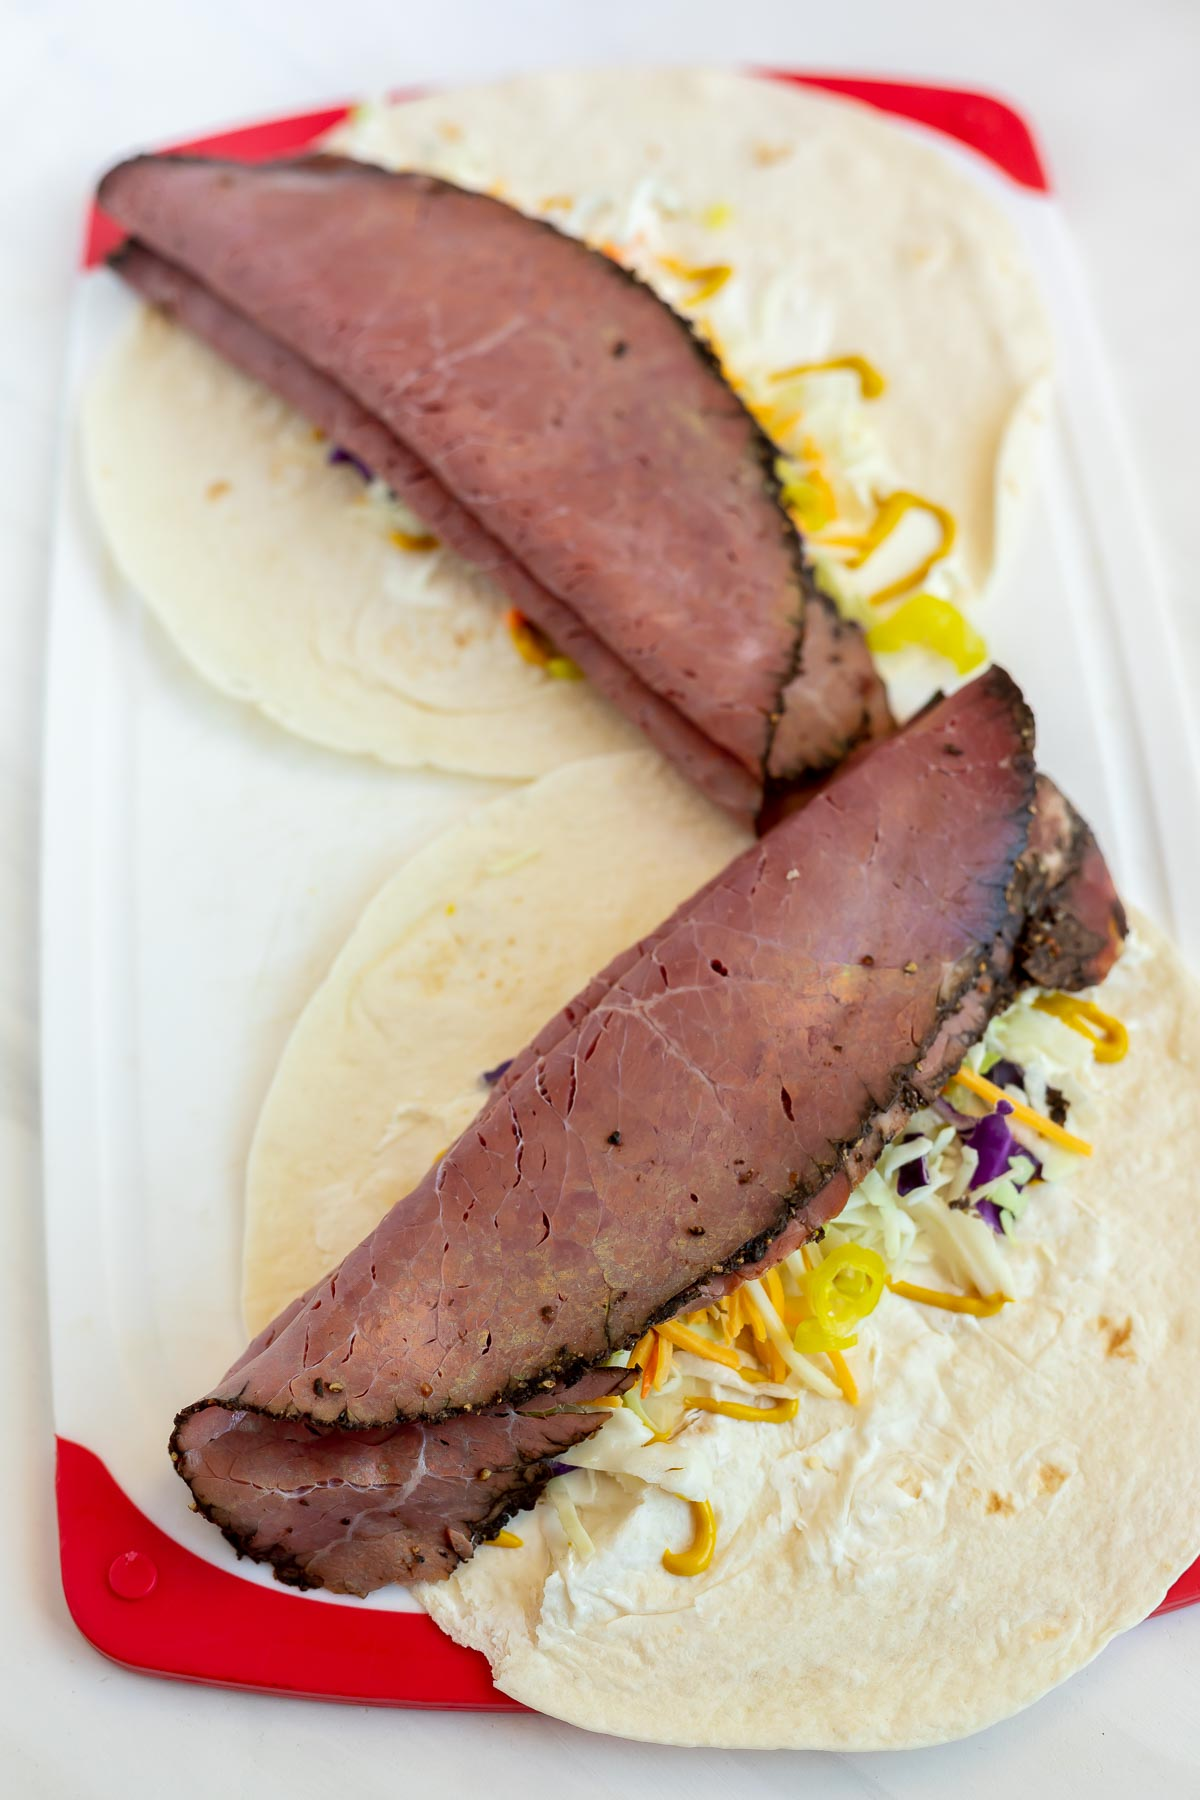 two flat tortillas topped with cheese, cabbage and pastrami on cutting board